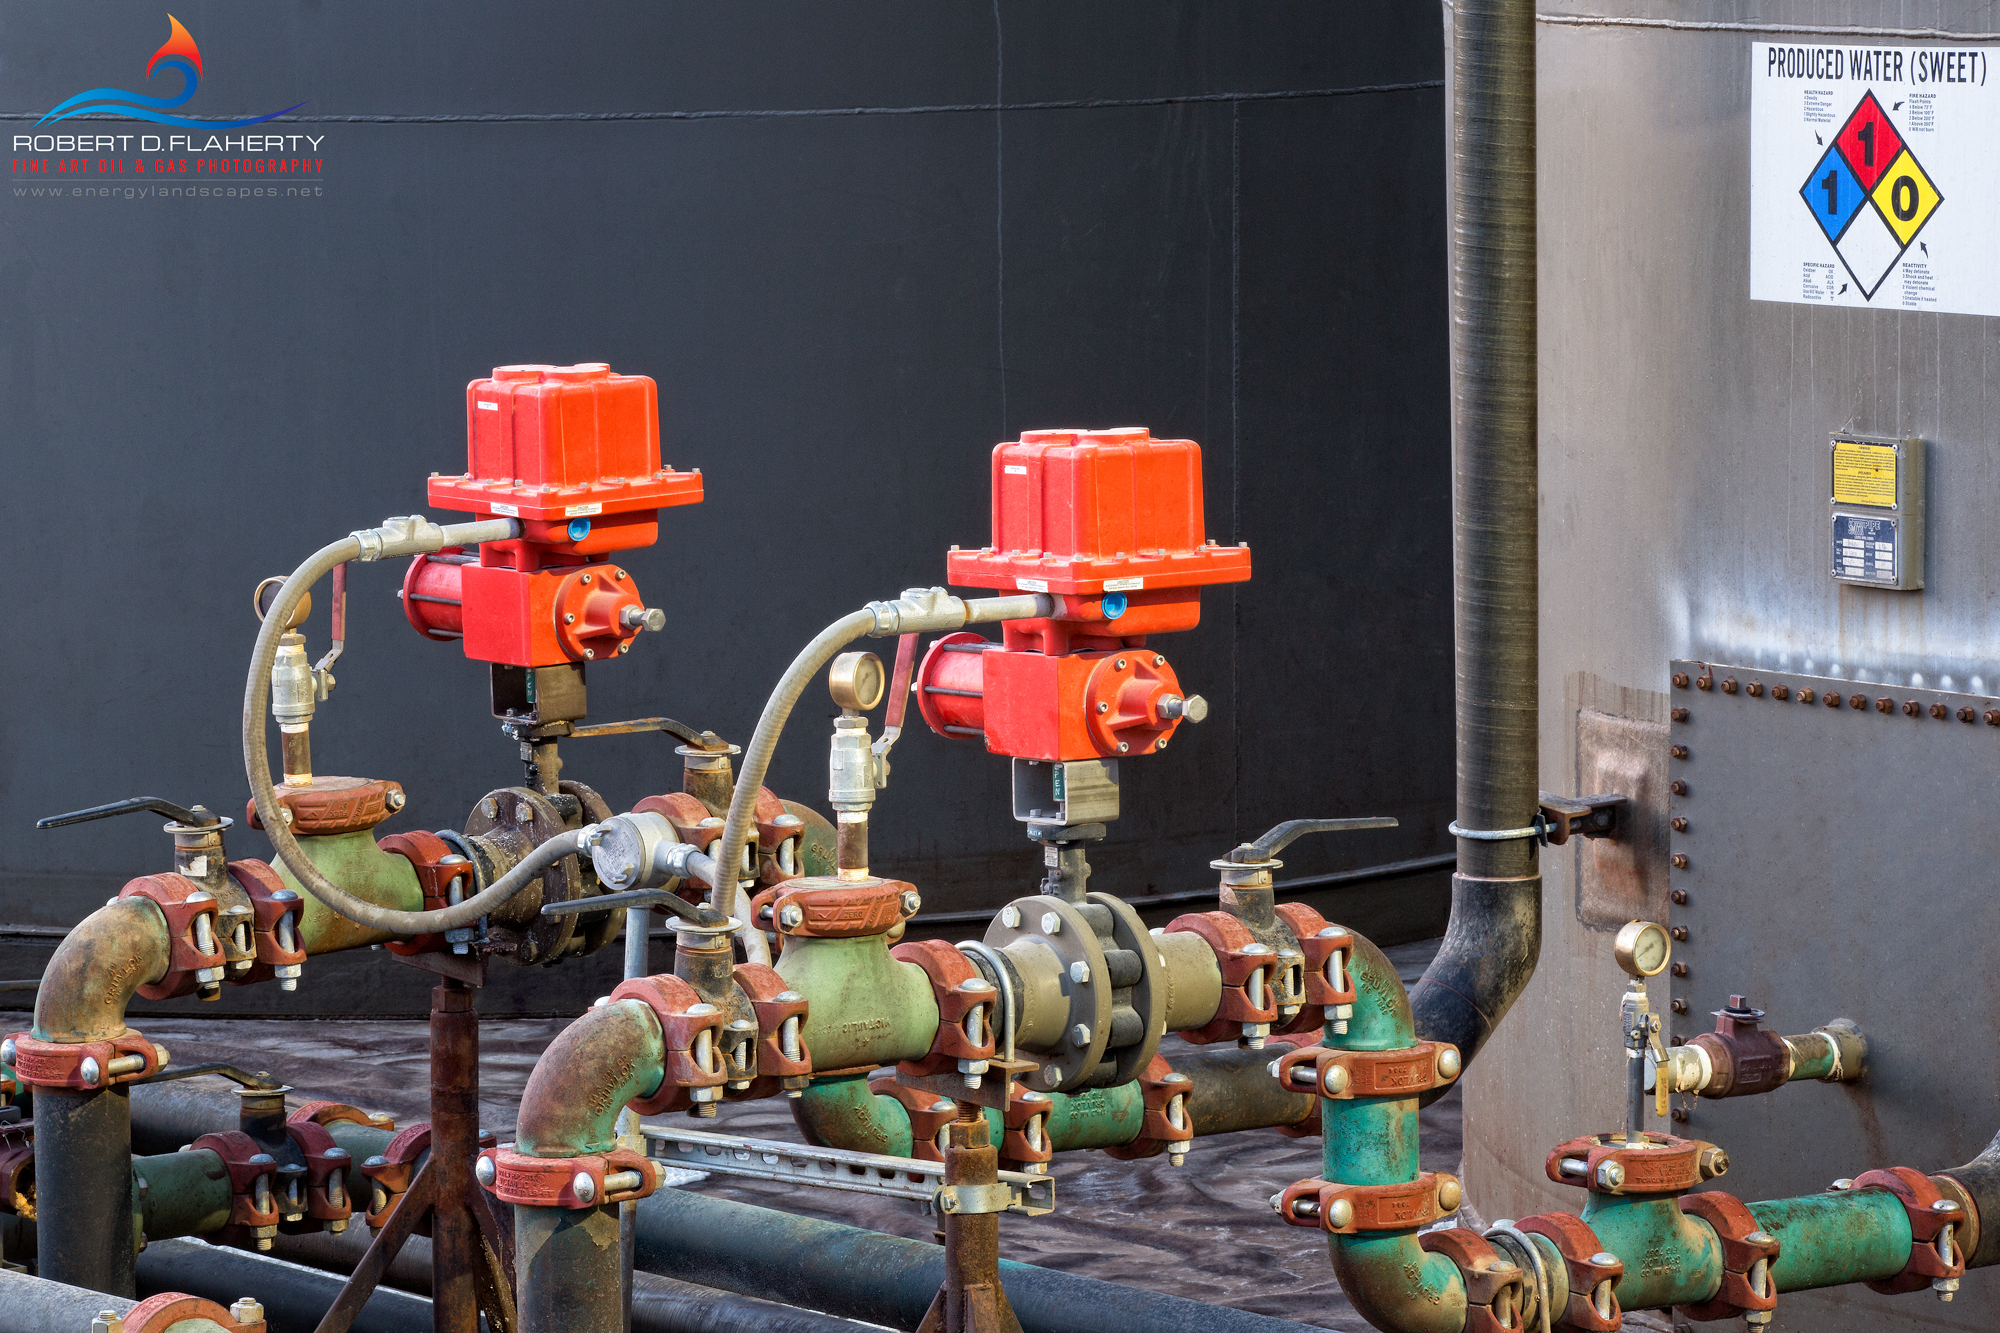 produced water, oilfield water, valves, slam valves, oilfield art, Oklahoma, high resolution , photo